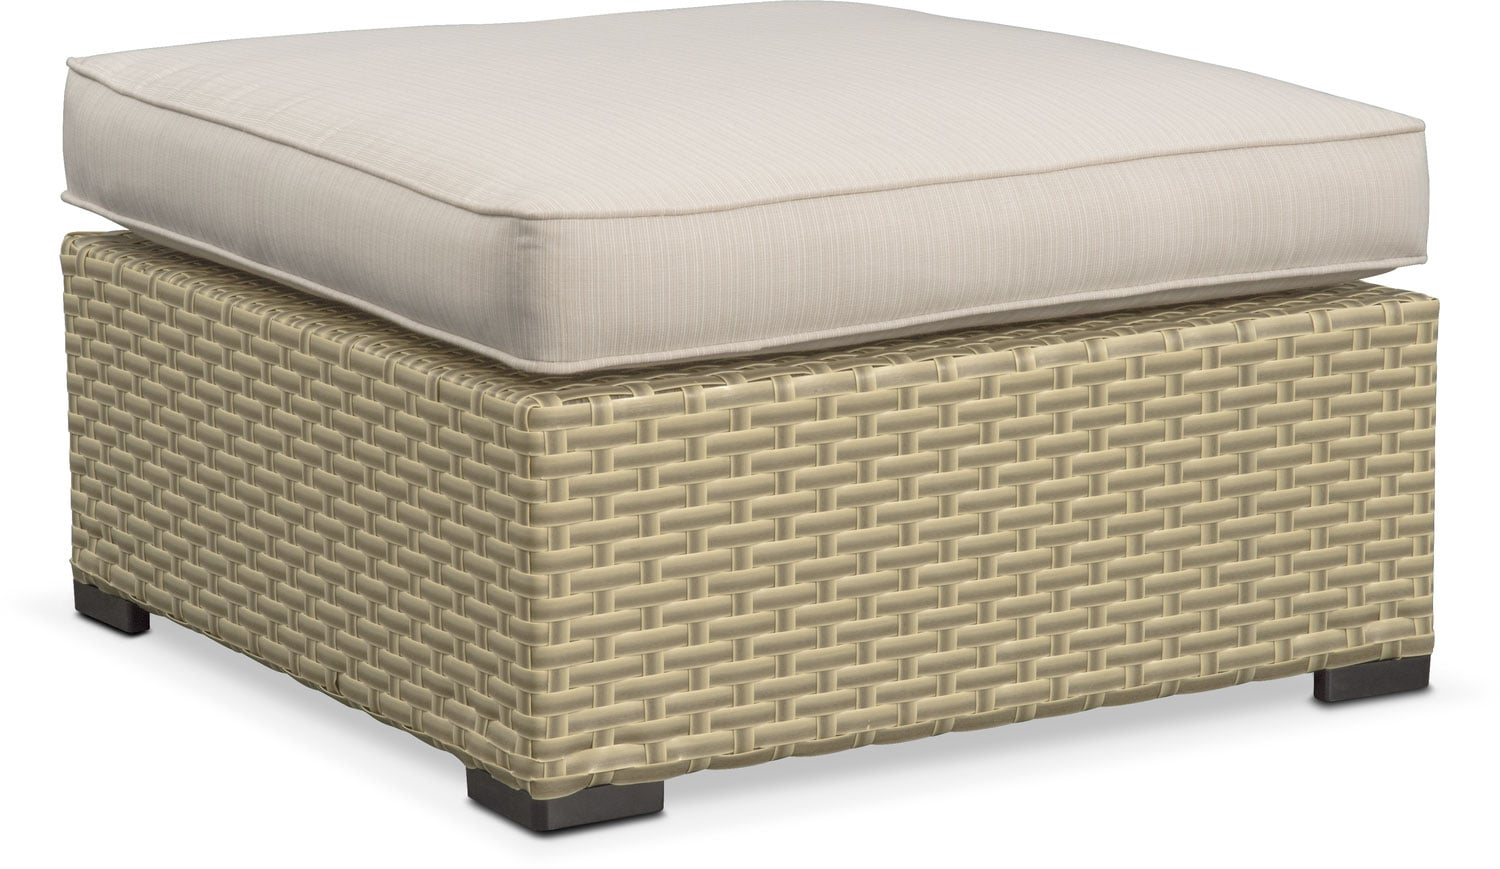 Regatta Outdoor Ottoman - Cream